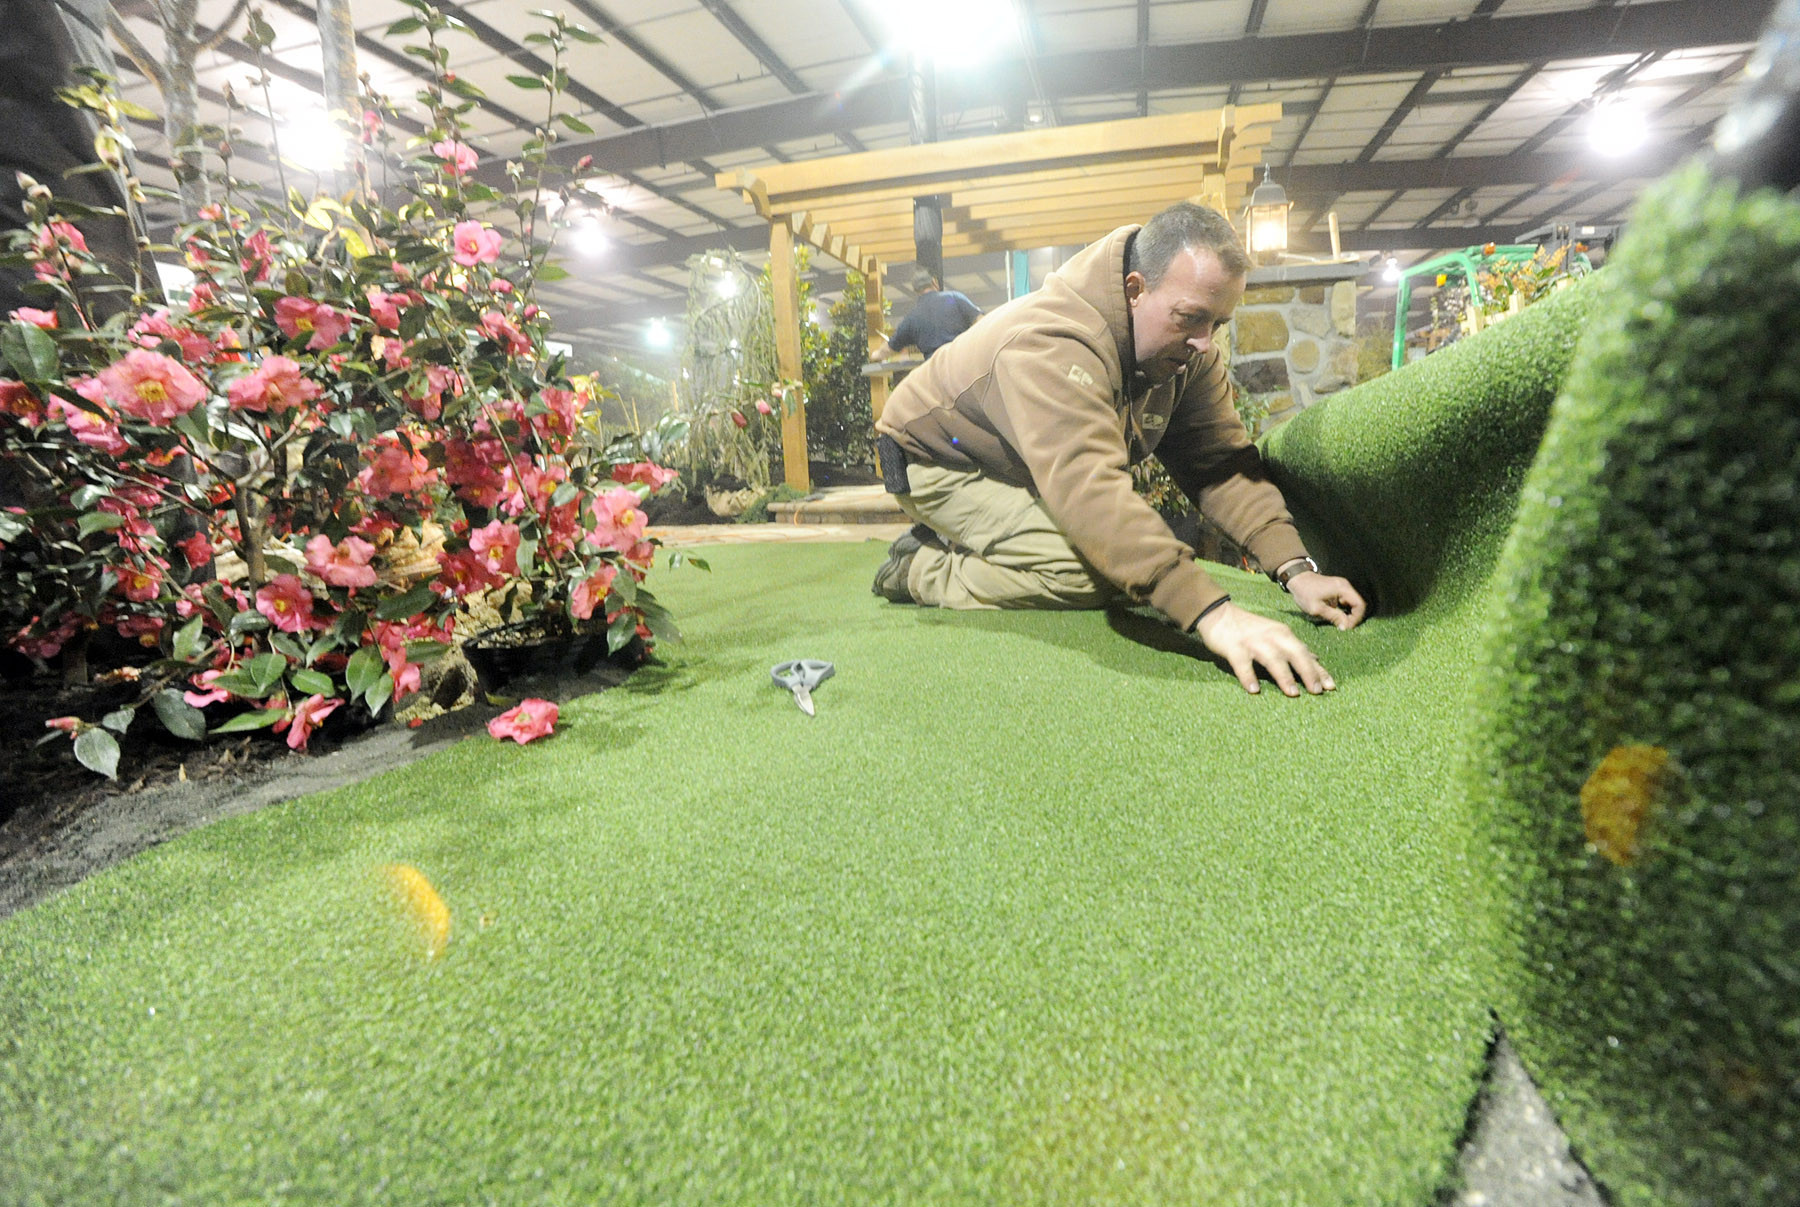 Towson Area Companies Prepare For Home And Garden Show   Baltimore Sun